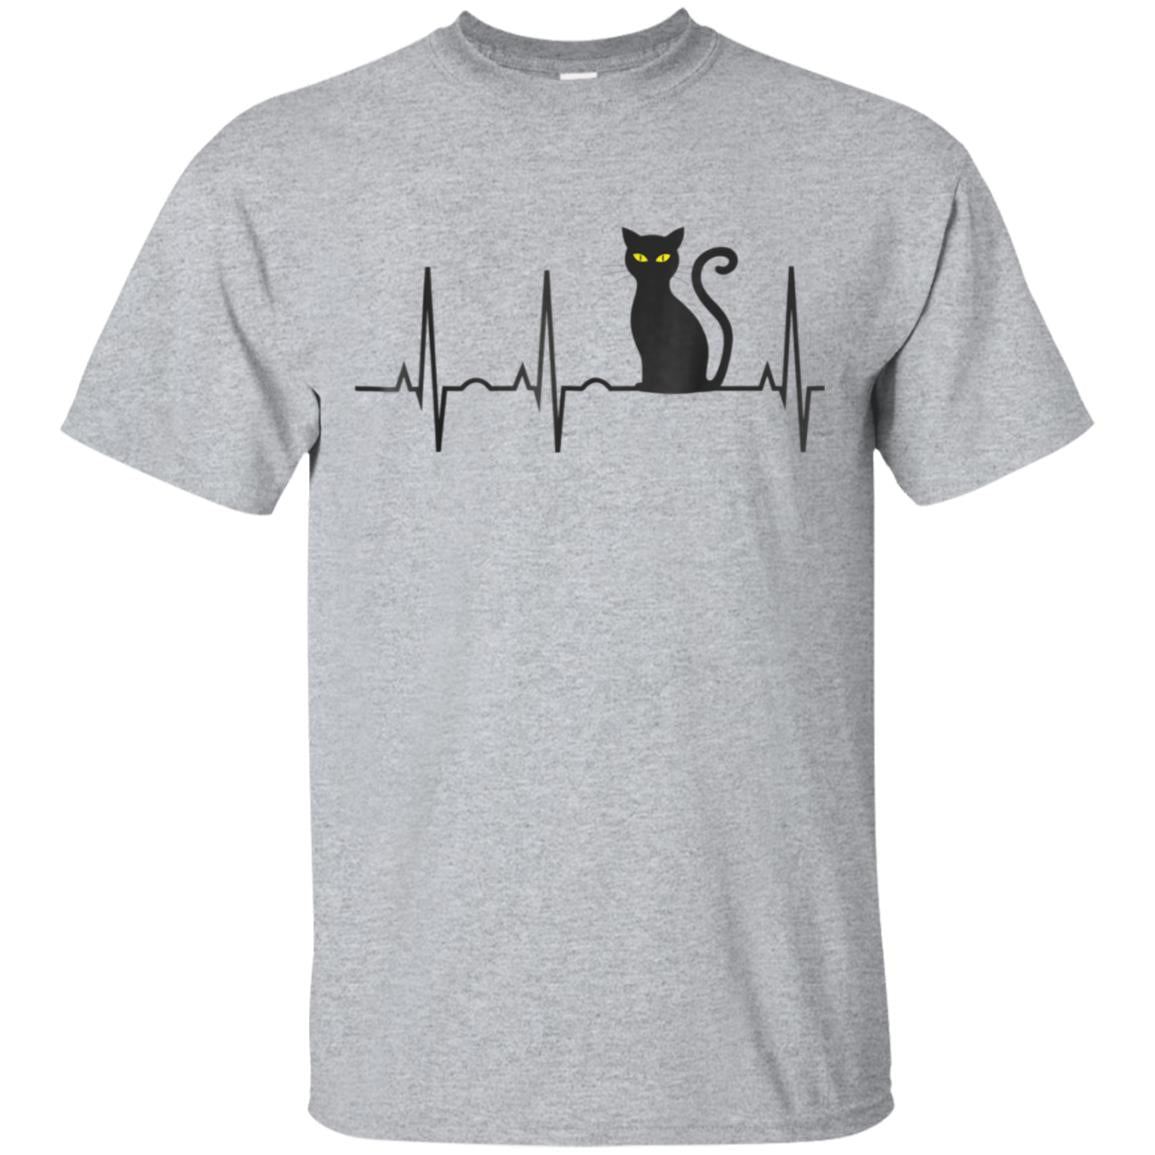 Black Cat Halloween Shirt - Best Spooky Kitty Heartbeat Tee 99promocode